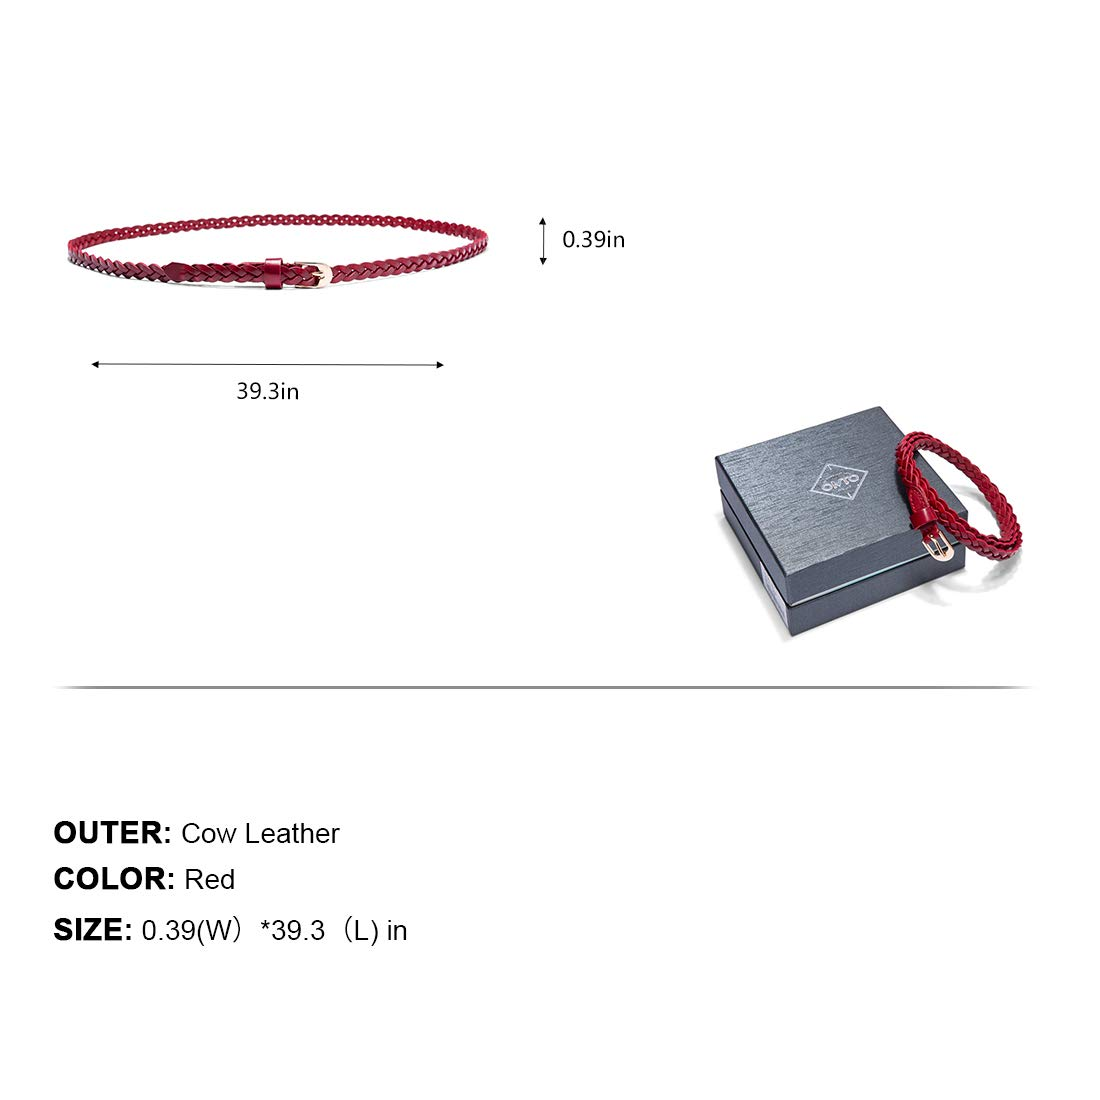 Women Cow Leather Stylish Adjustable Casual Skinny Belts Woven Stretch Braided Red Belts by OMENTAR (Image #3)